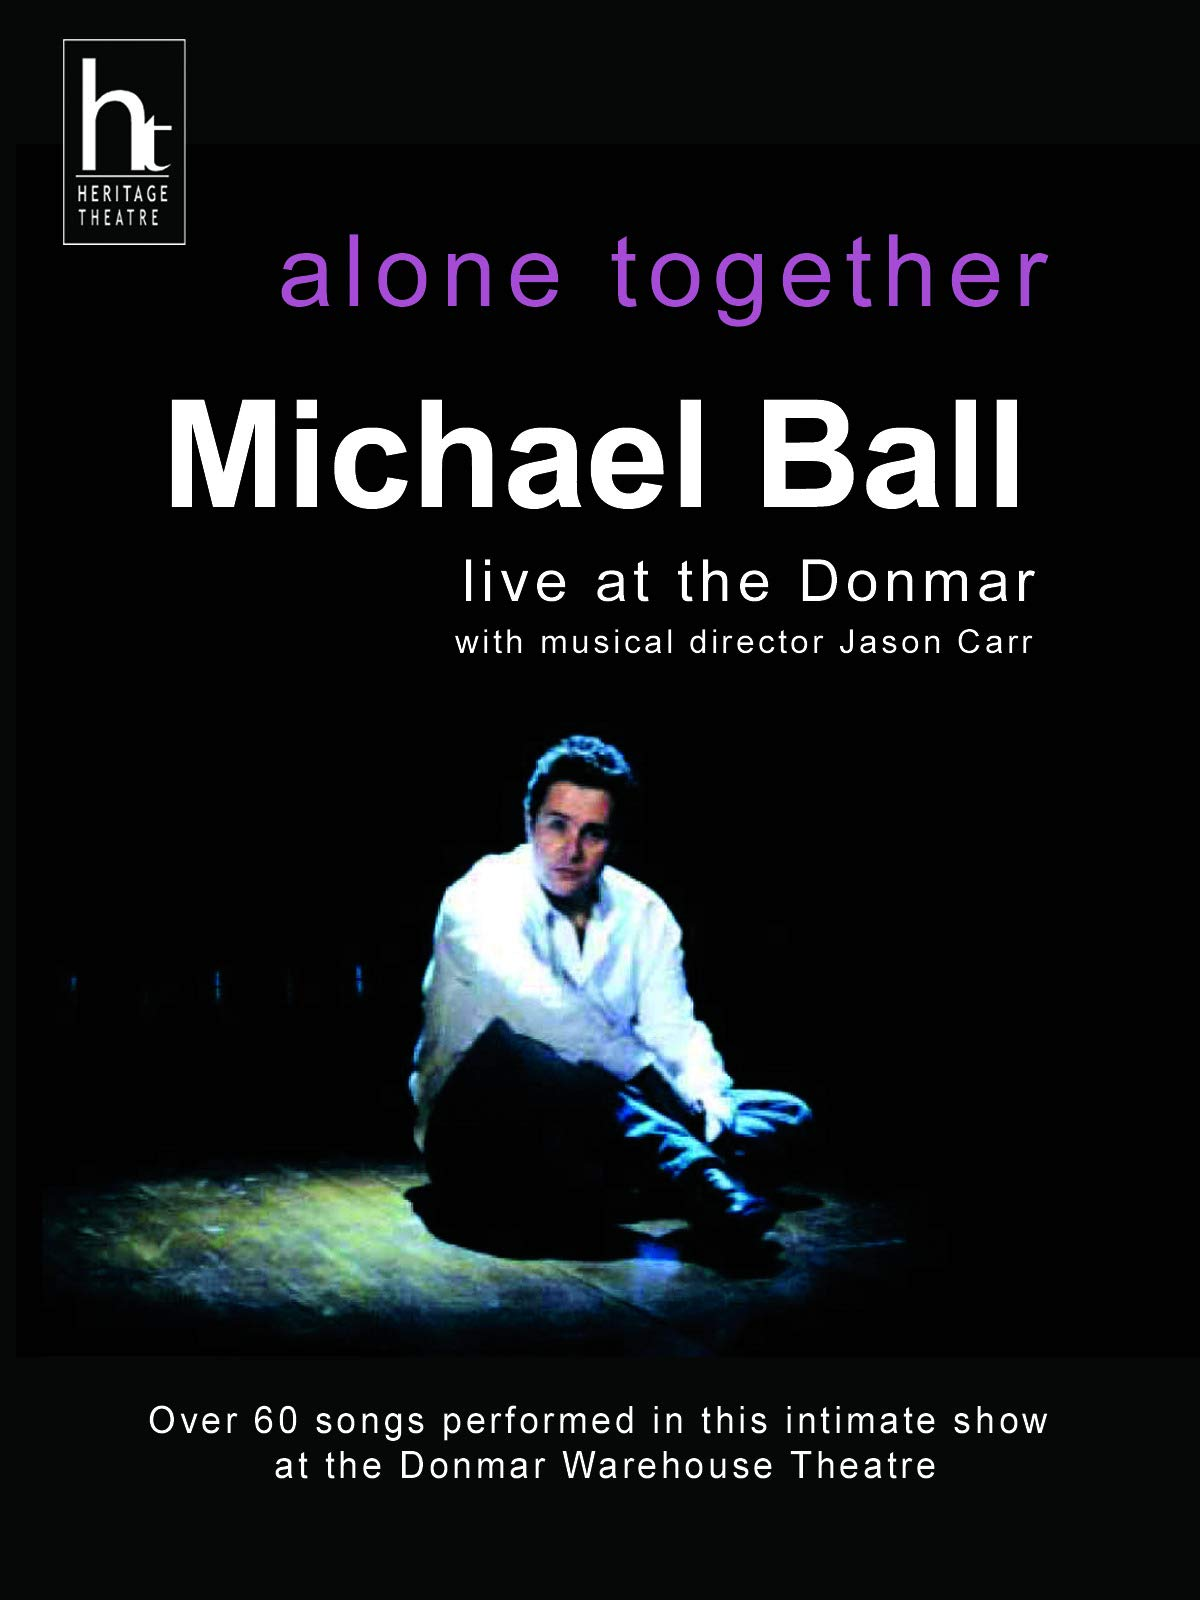 Michael Ball - alone together